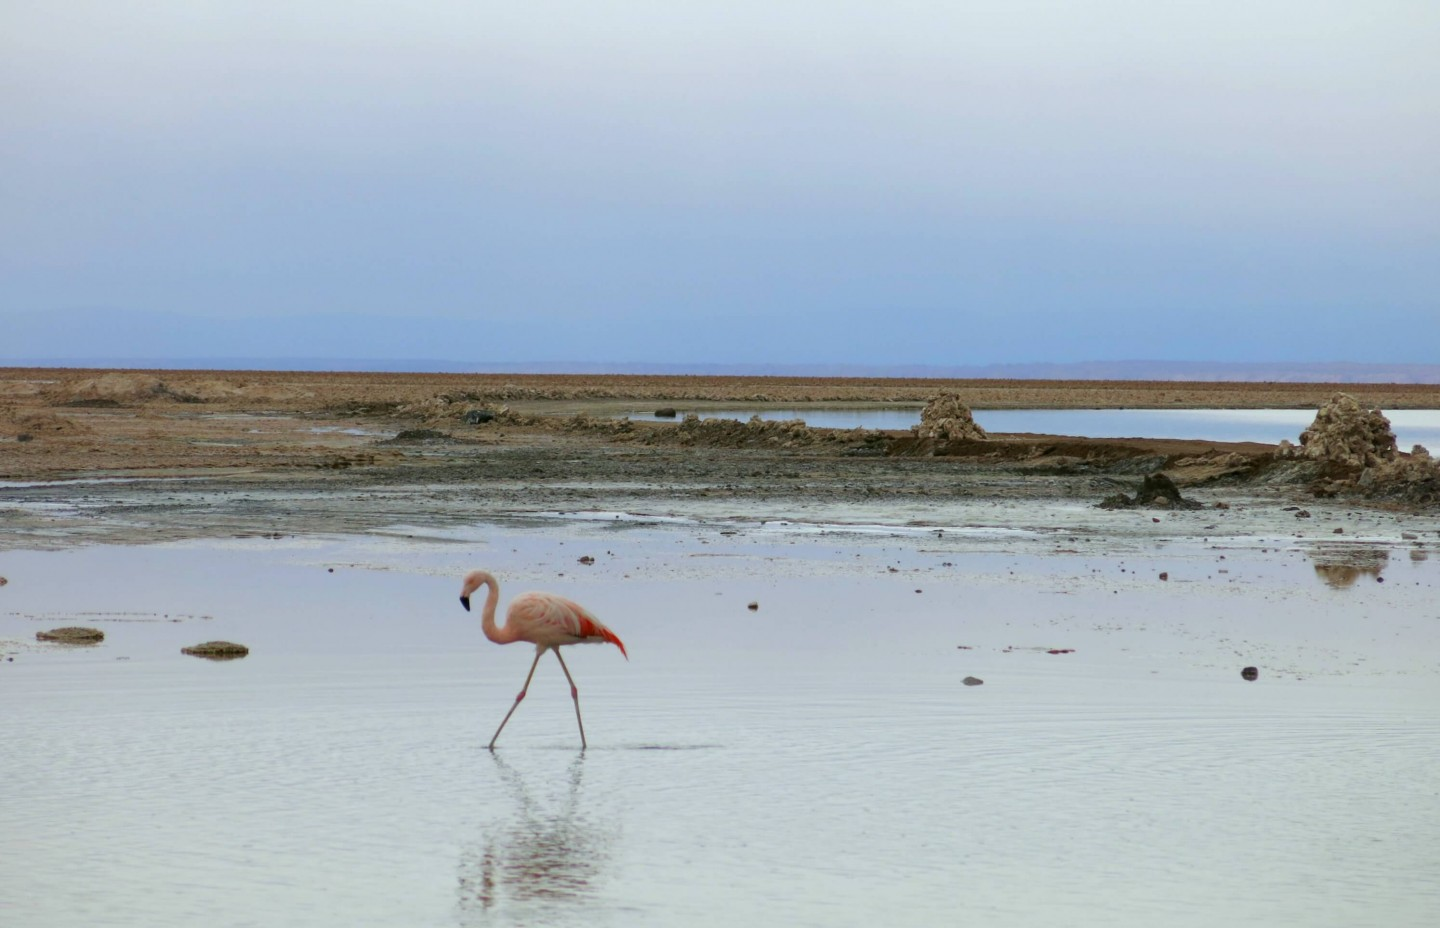 The lagoons in The Atacama Desert is one of the few places in the world you can see flamingos in their natural habitat.